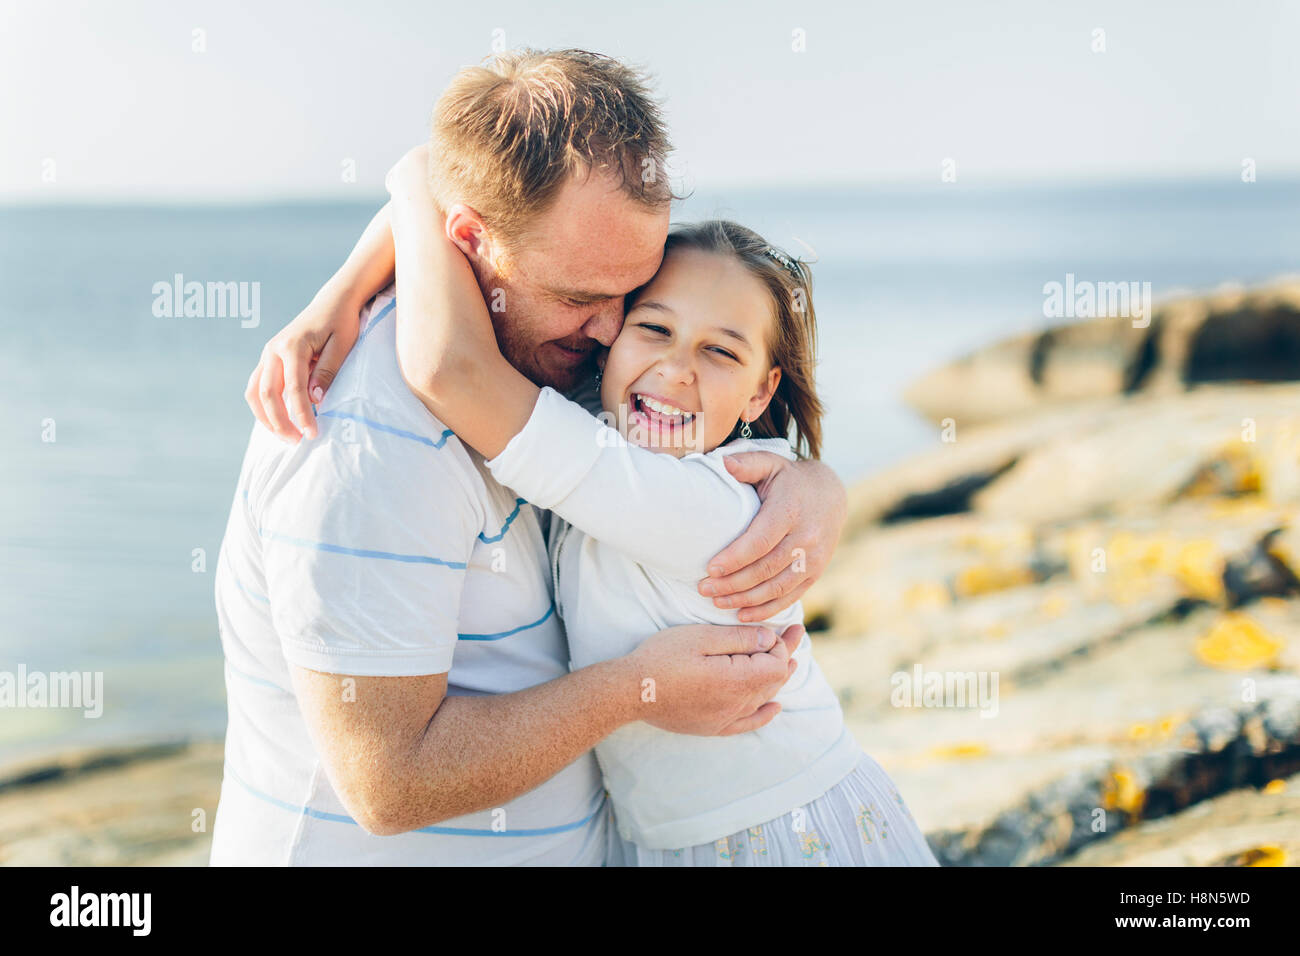 Man hugging girl (10-11) Photo Stock